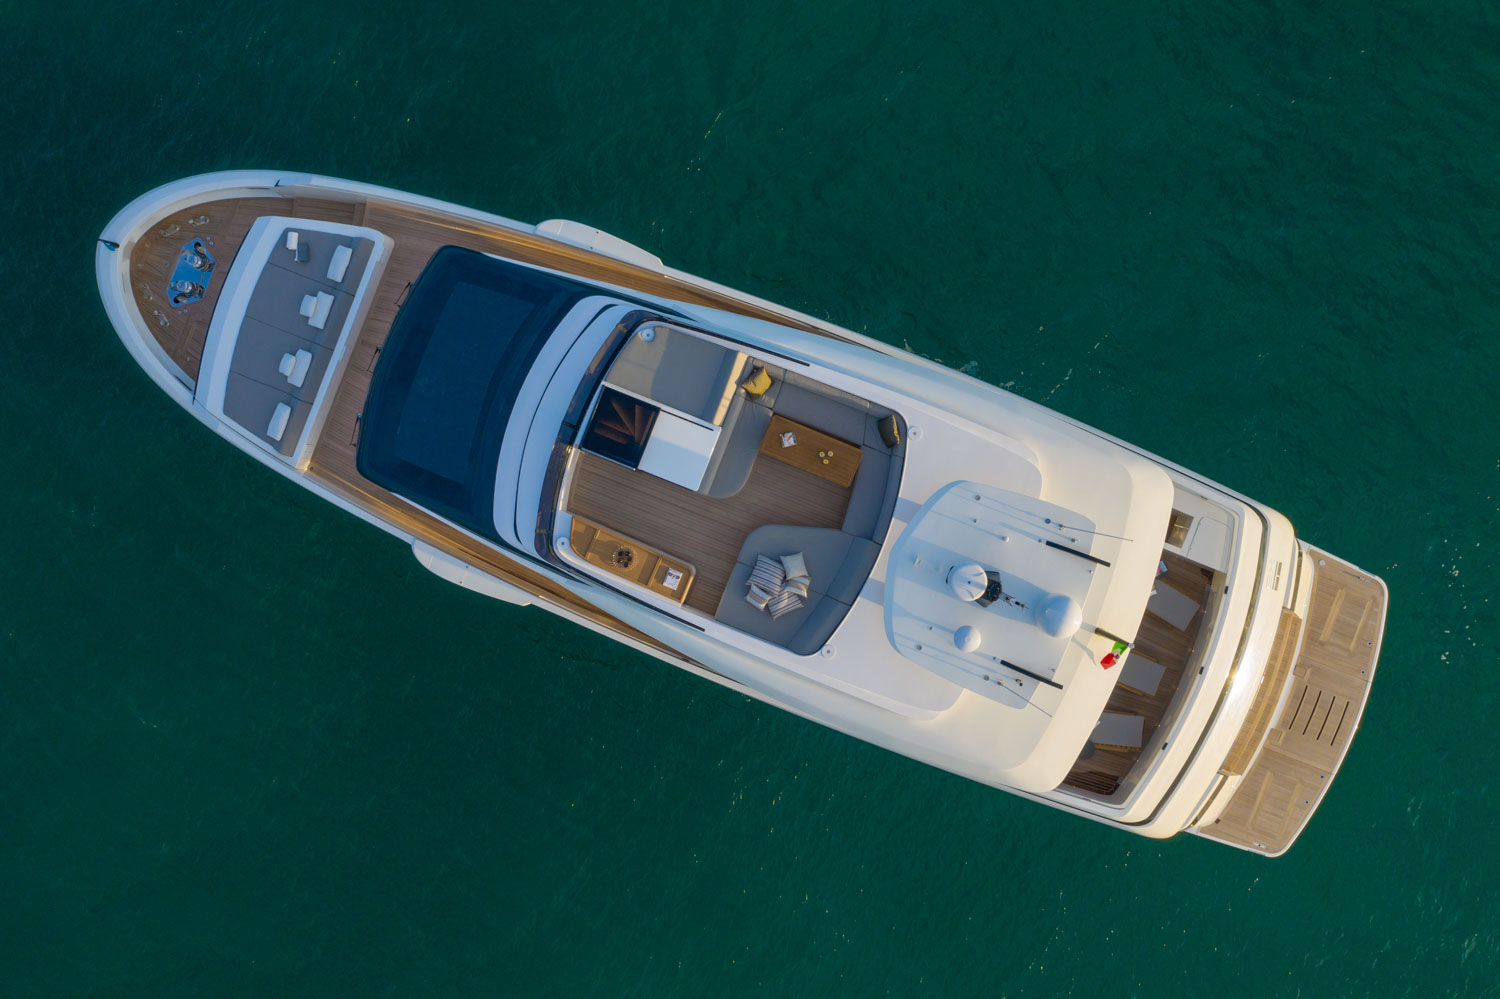 Extra 93 Yacht Top View